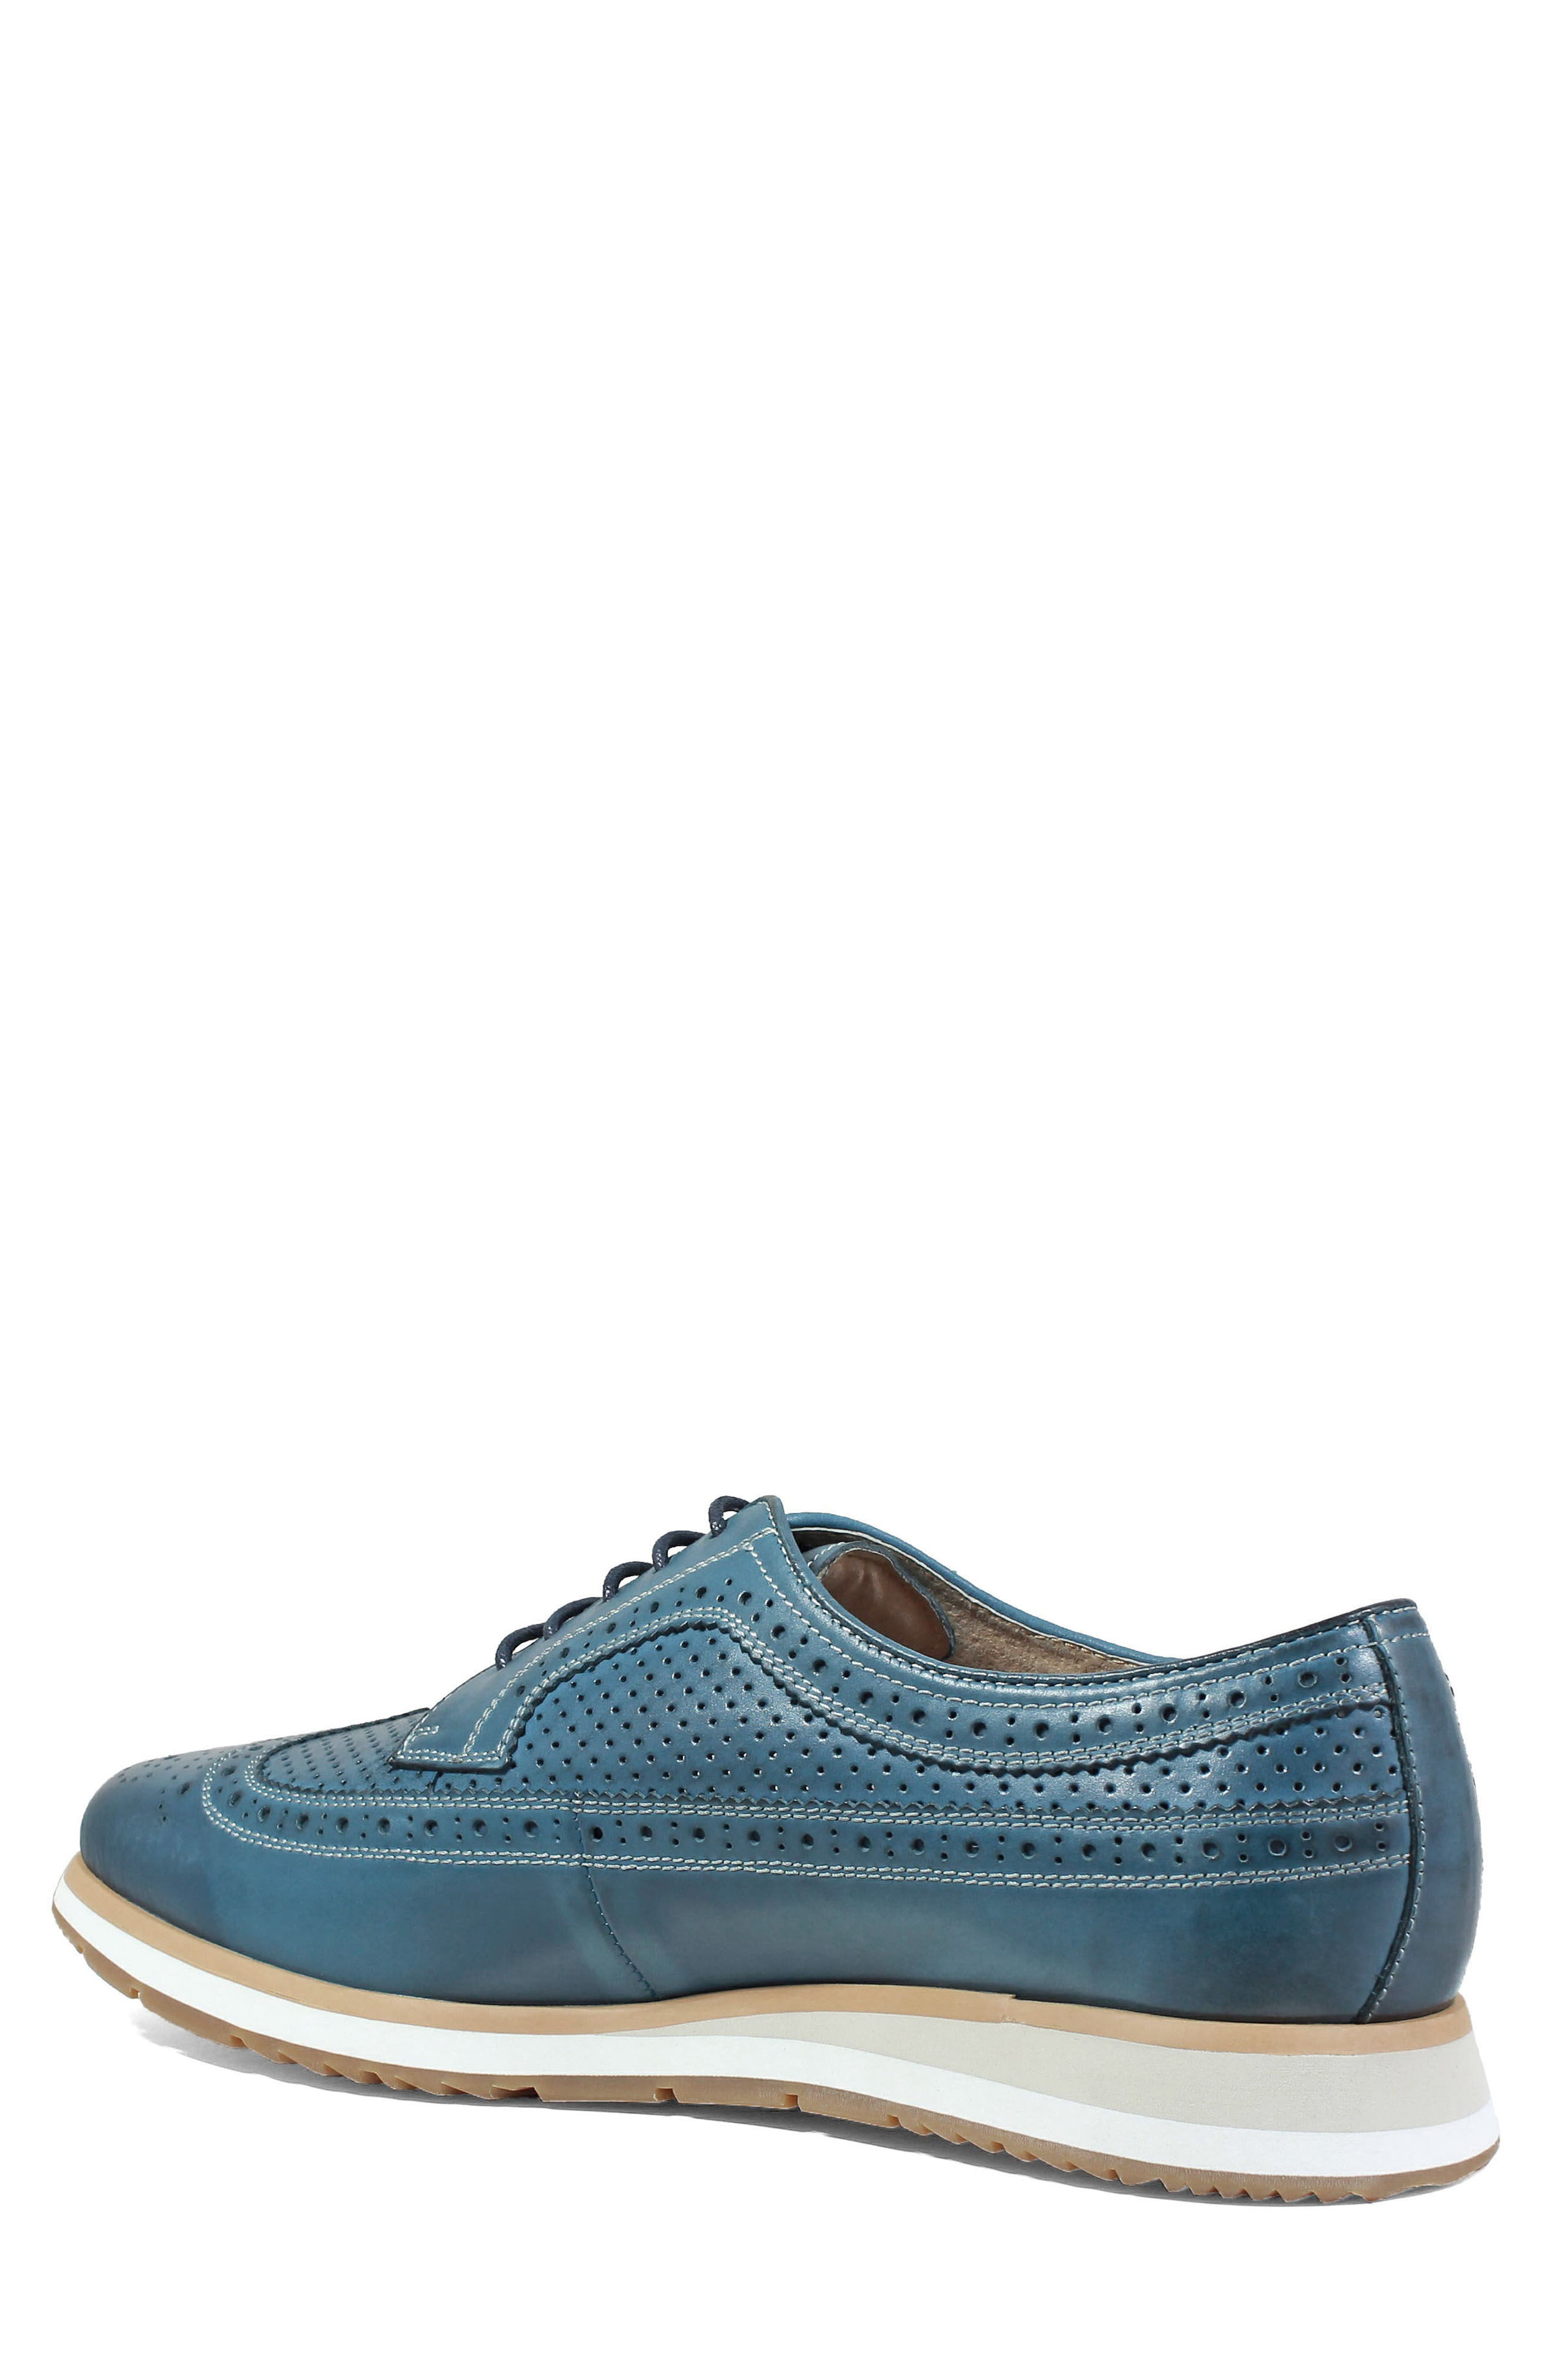 Limited Flux Perforated Wingtip Derby,                             Alternate thumbnail 2, color,                             Indigo Leather